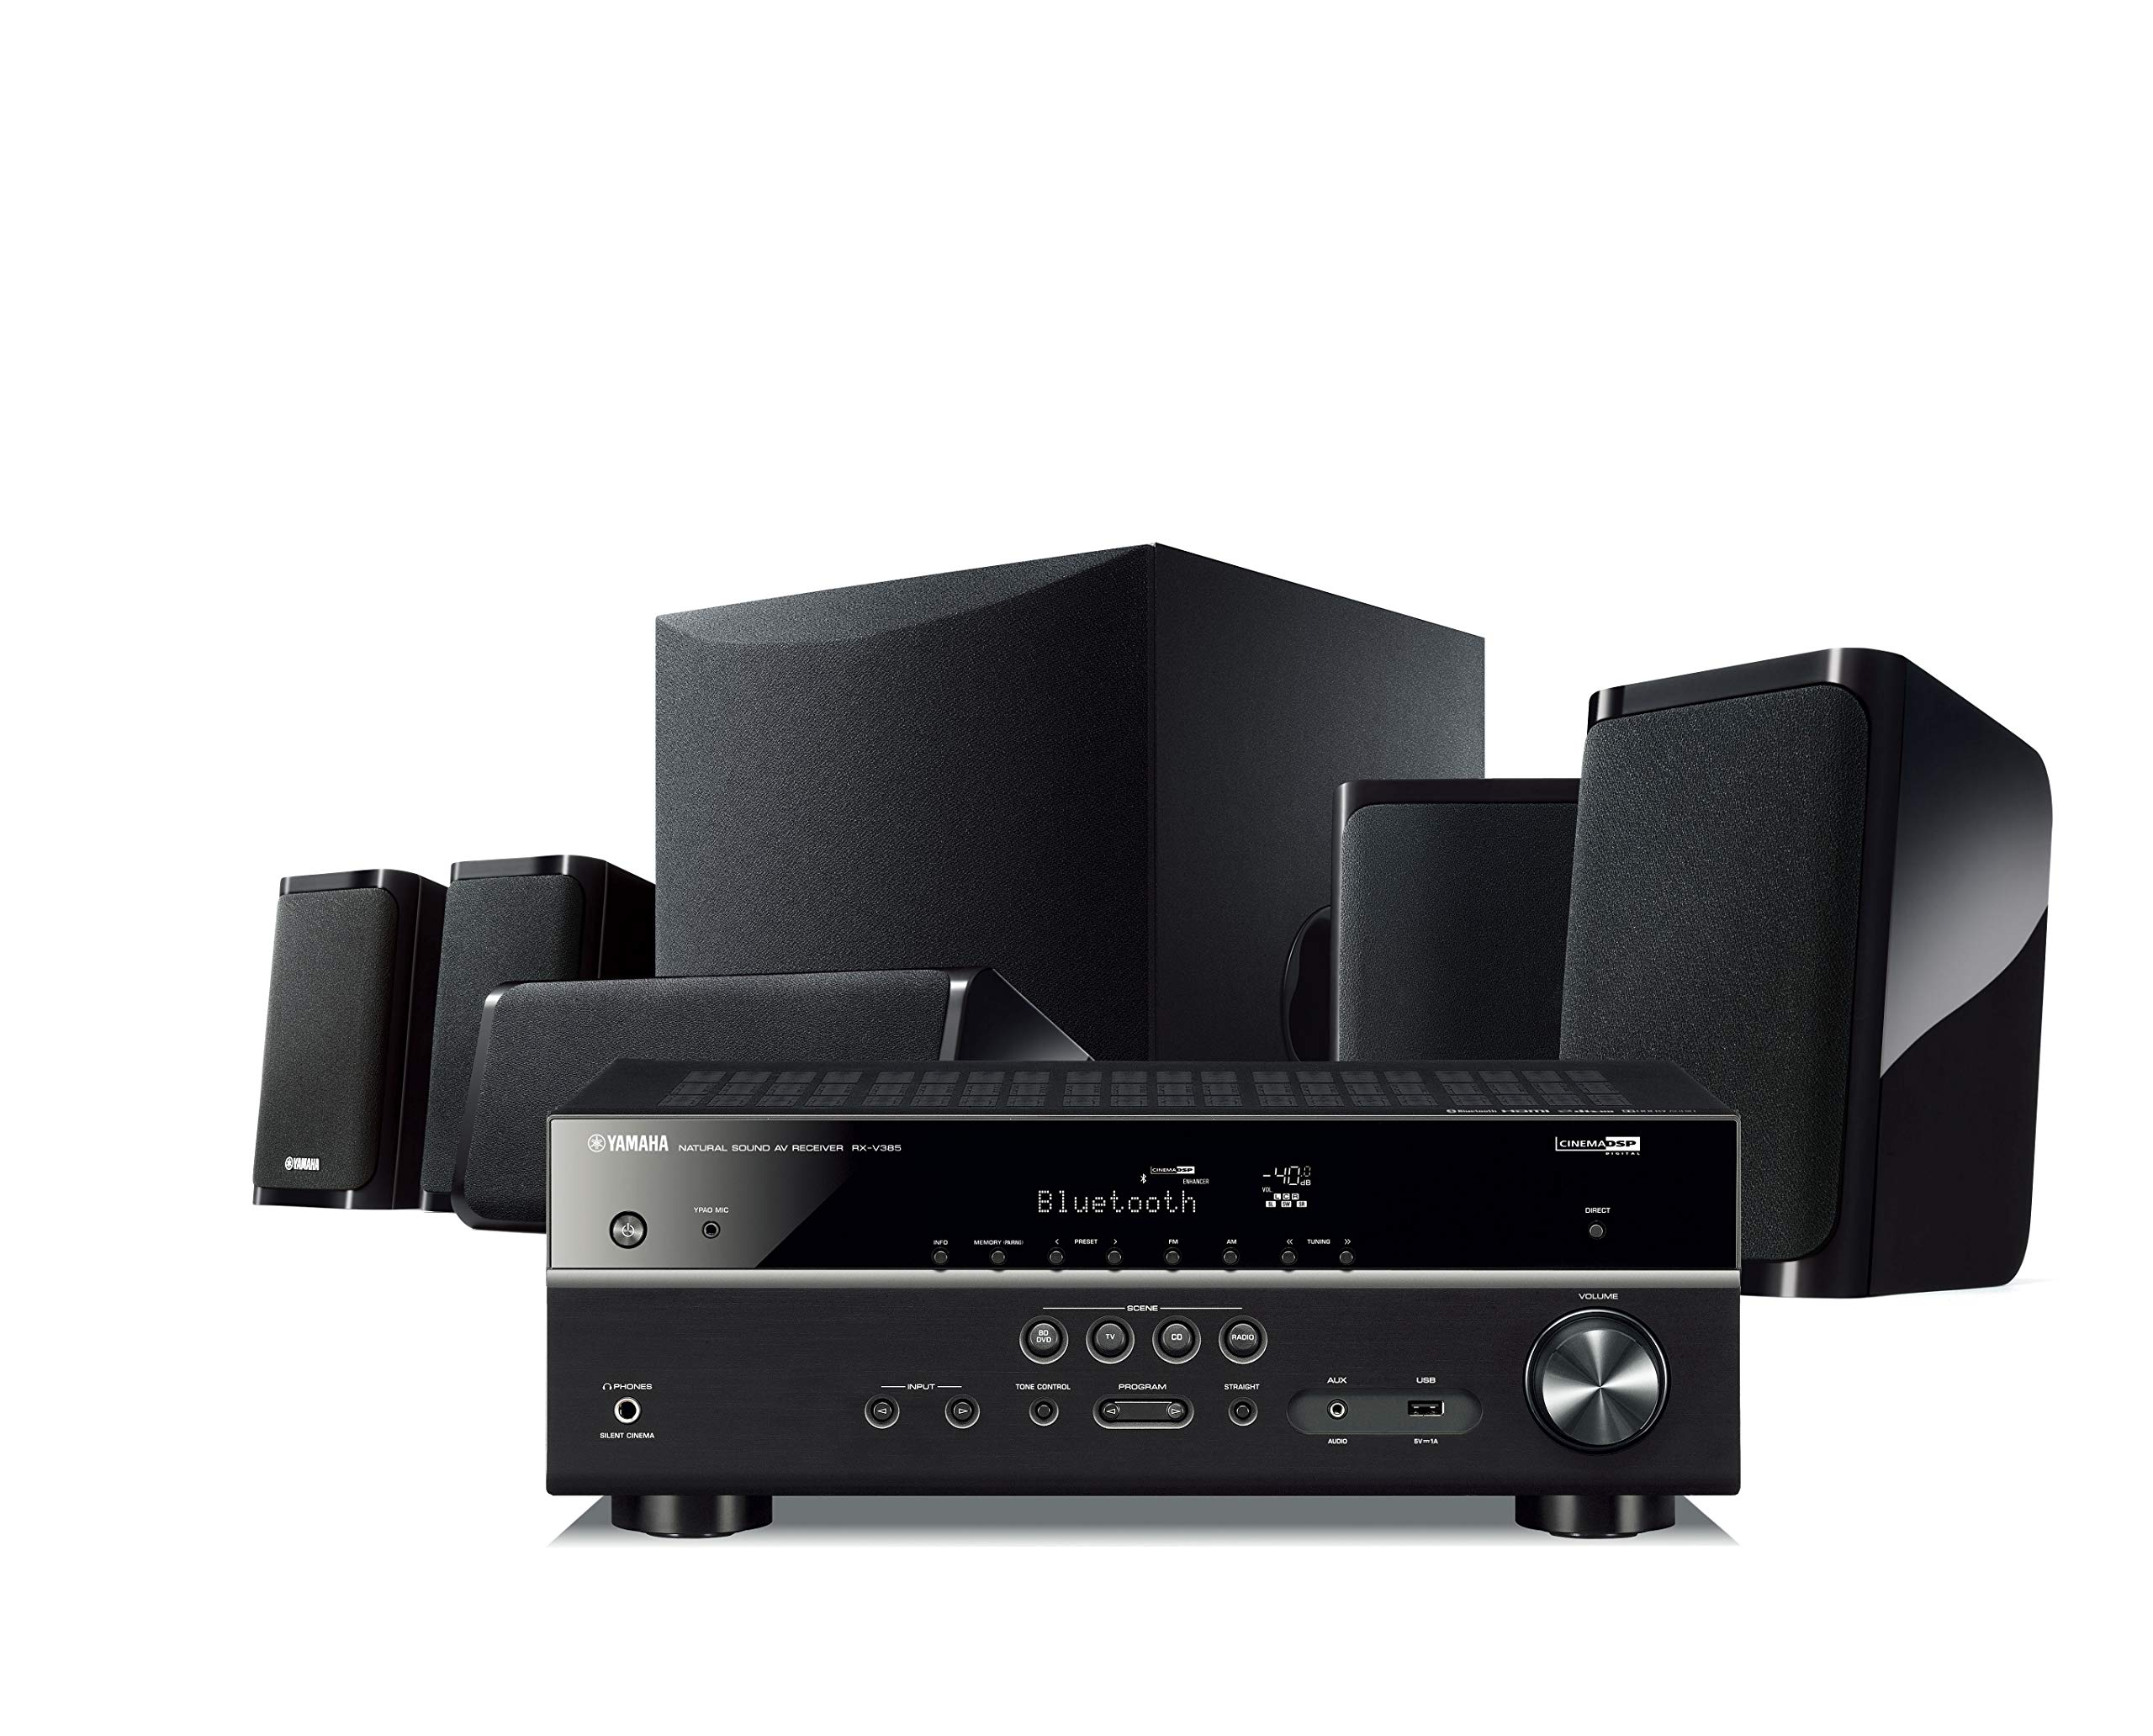 Yamaha Yht-4950U 4K Ultra HD 5.1-Channel Home Theater System with Bluetooth by Yamaha Audio